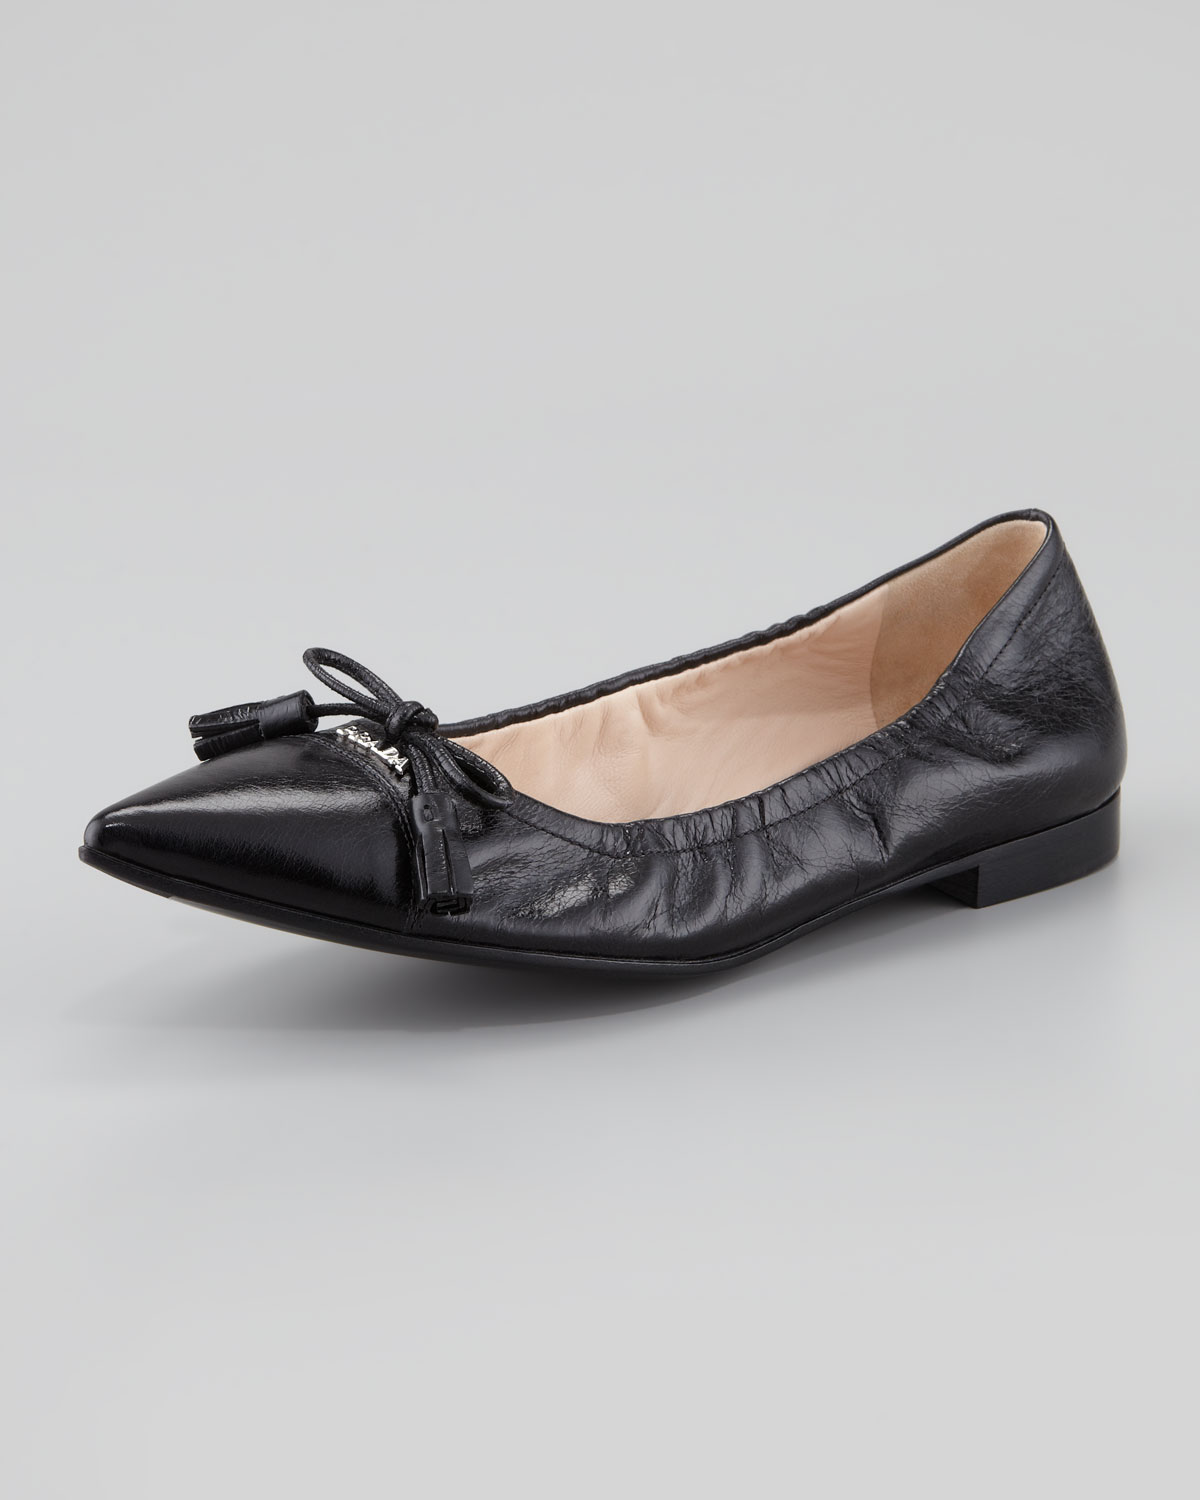 Nordstrom Prada Flat Shoes